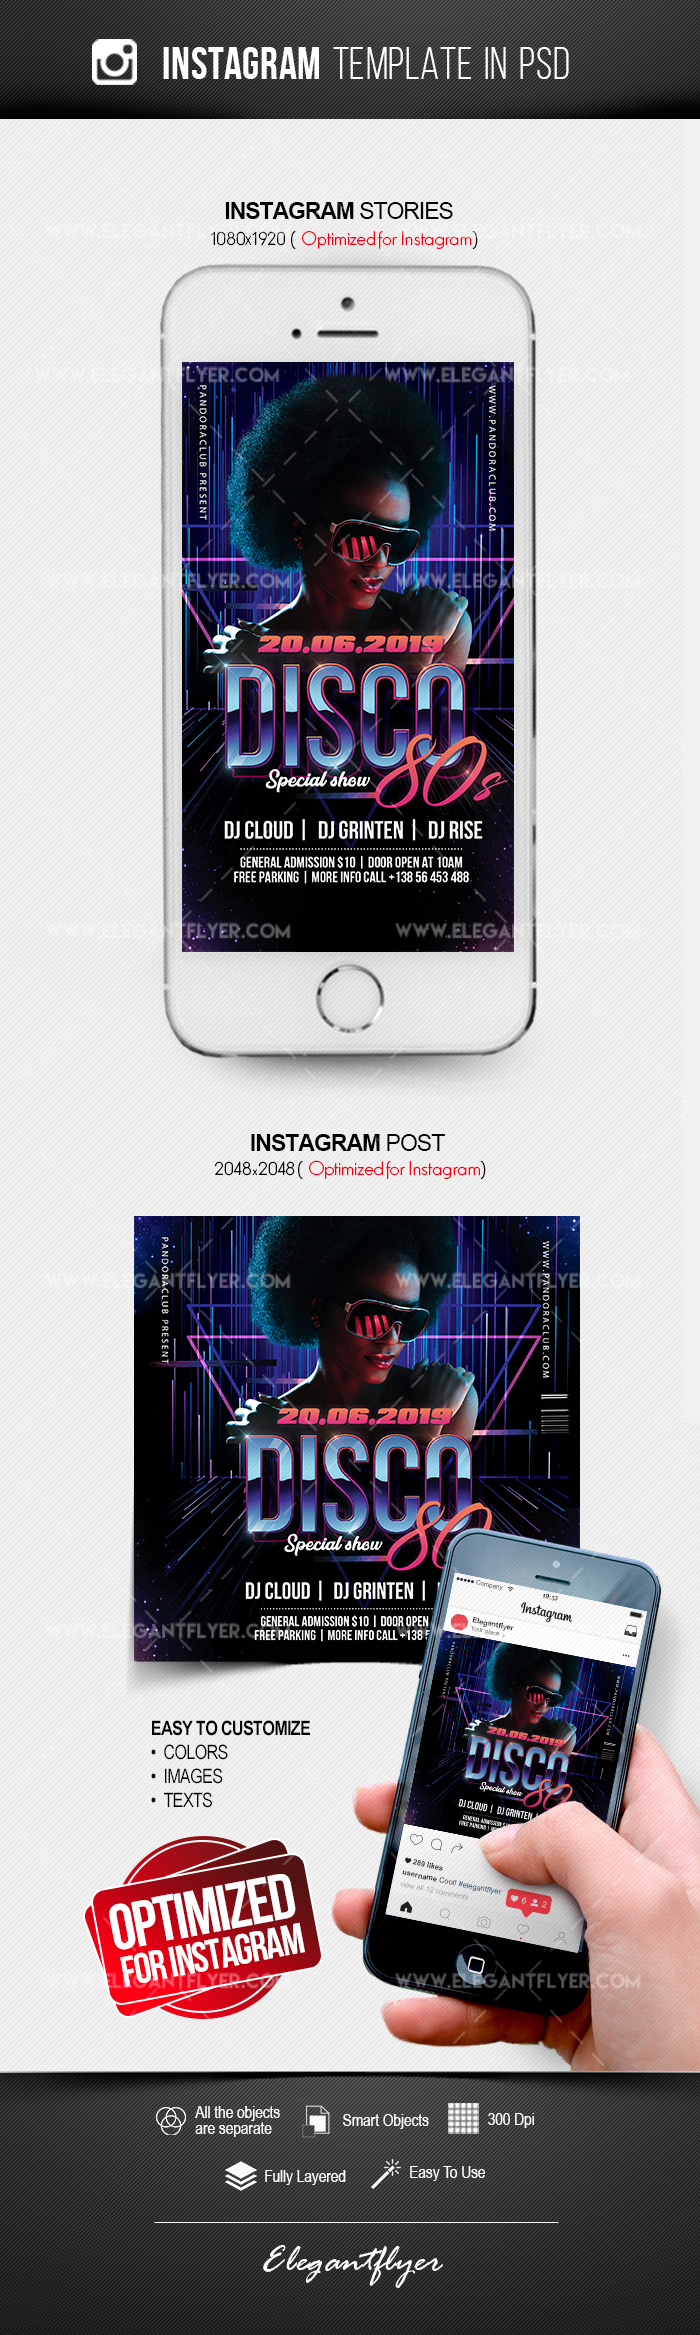 Disco 80s – Instagram Stories Template in PSD + Post Templates